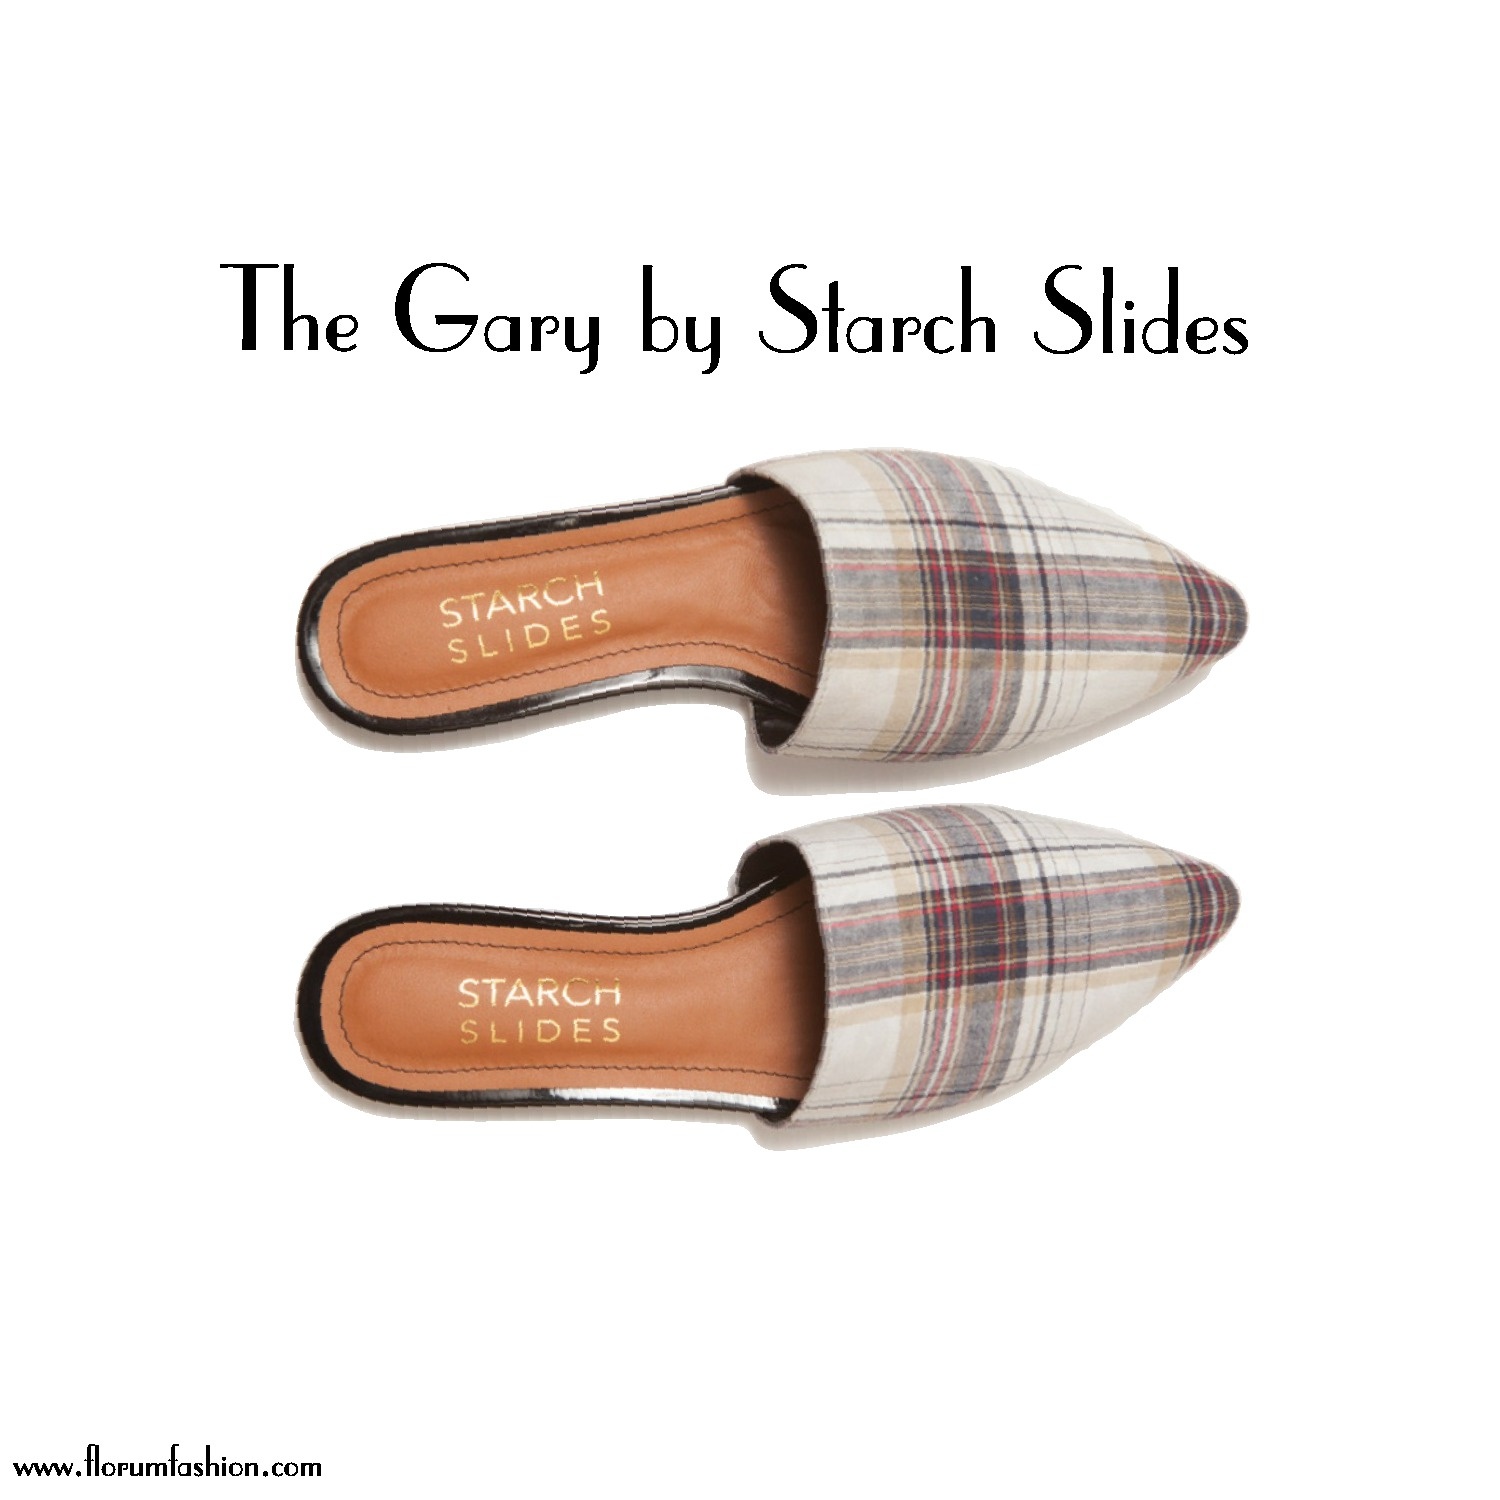 Ethical-upCycled-shoes-florum-fashion-starch-slides-page-0.jpg